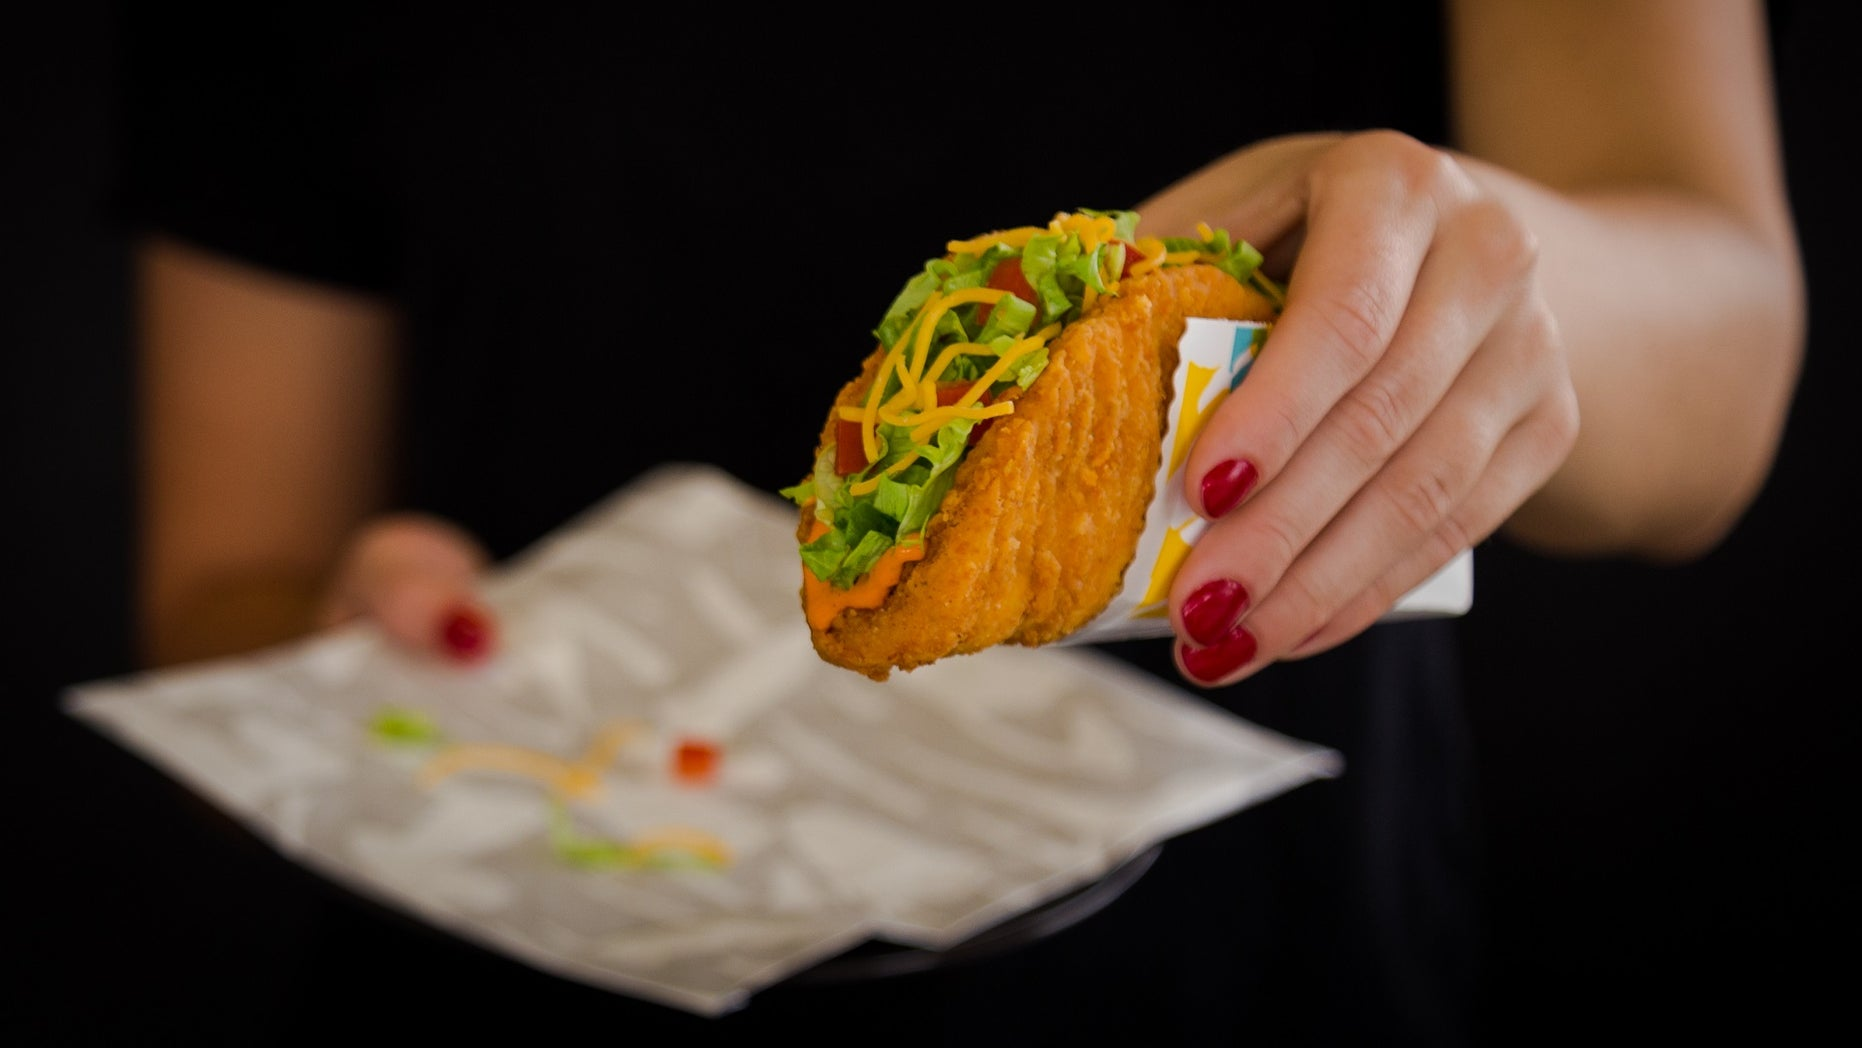 Taco Bell is bringing back its Naked Chicken Chalupas, with a fried chicken shell, and an even spicier version.